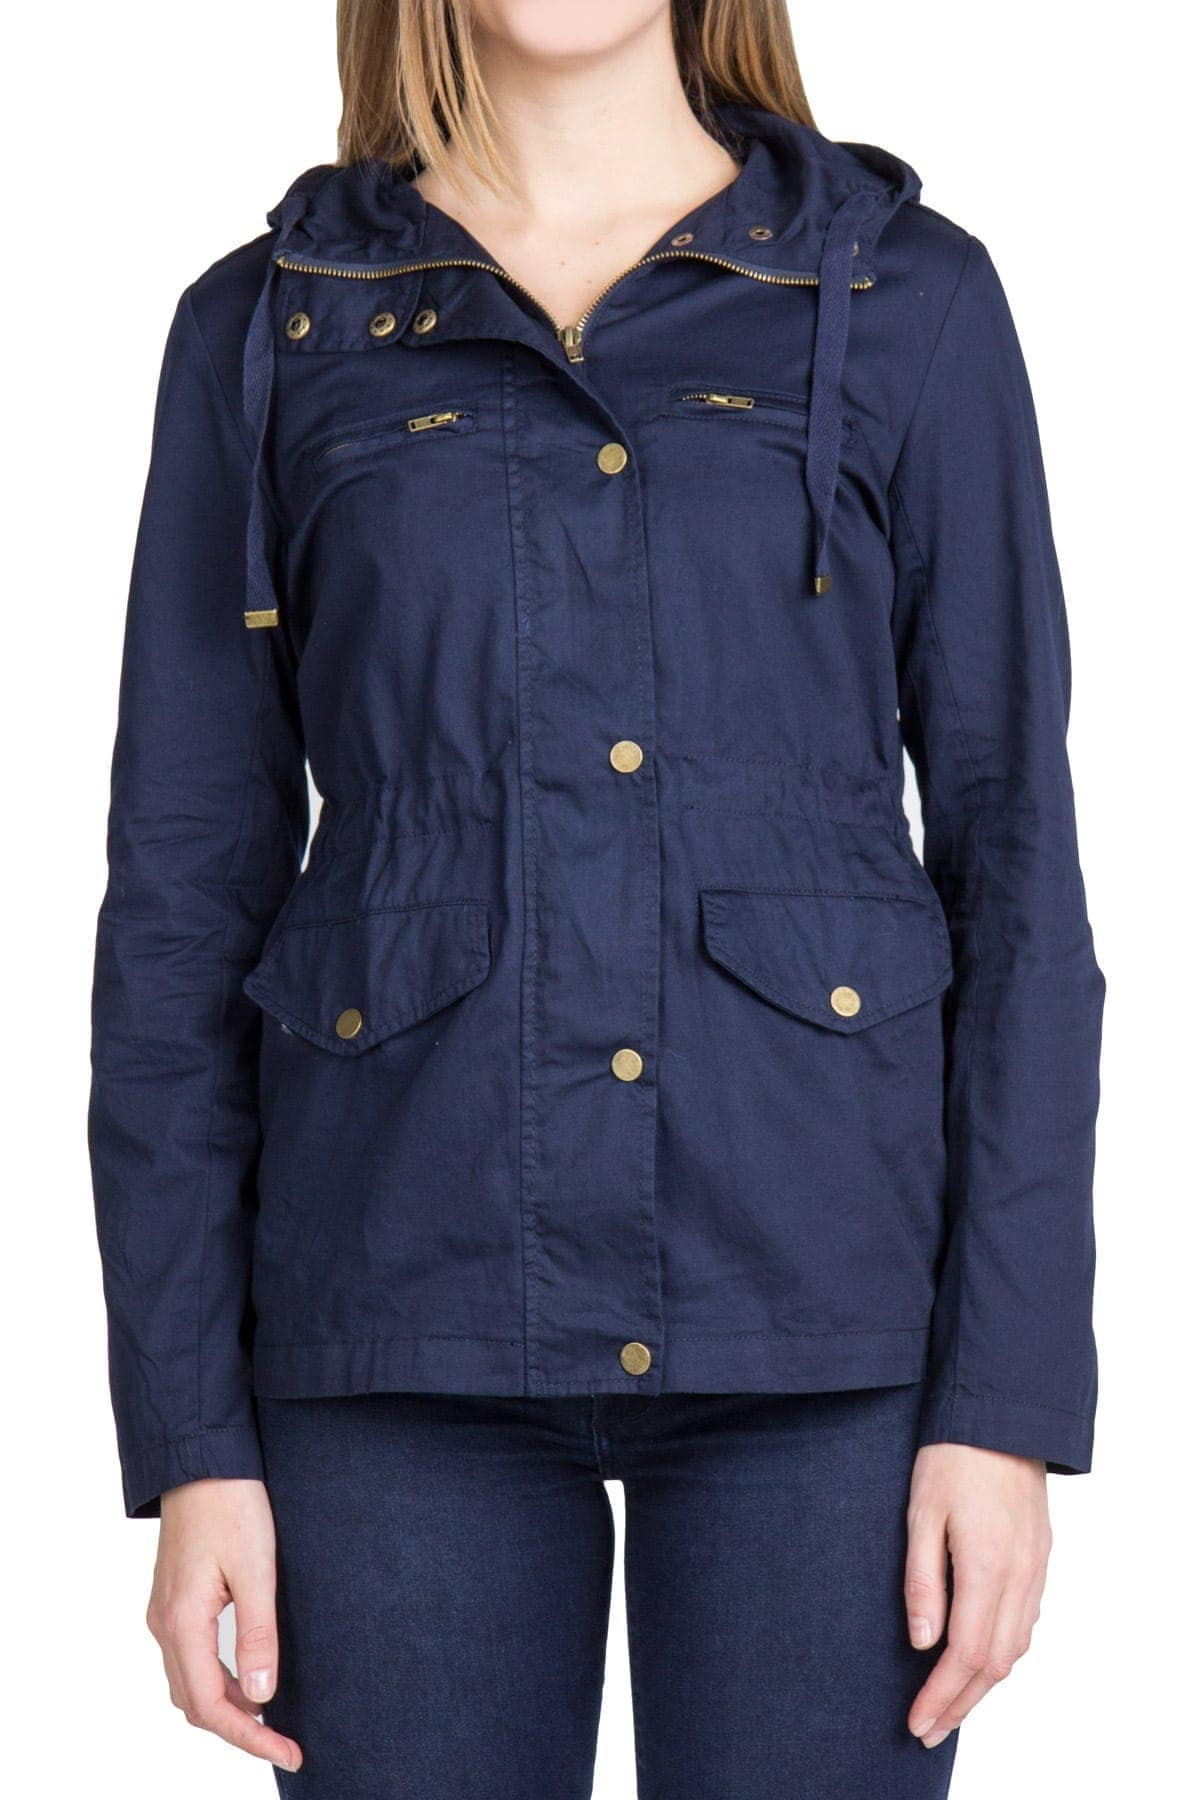 Navy anorak jacket